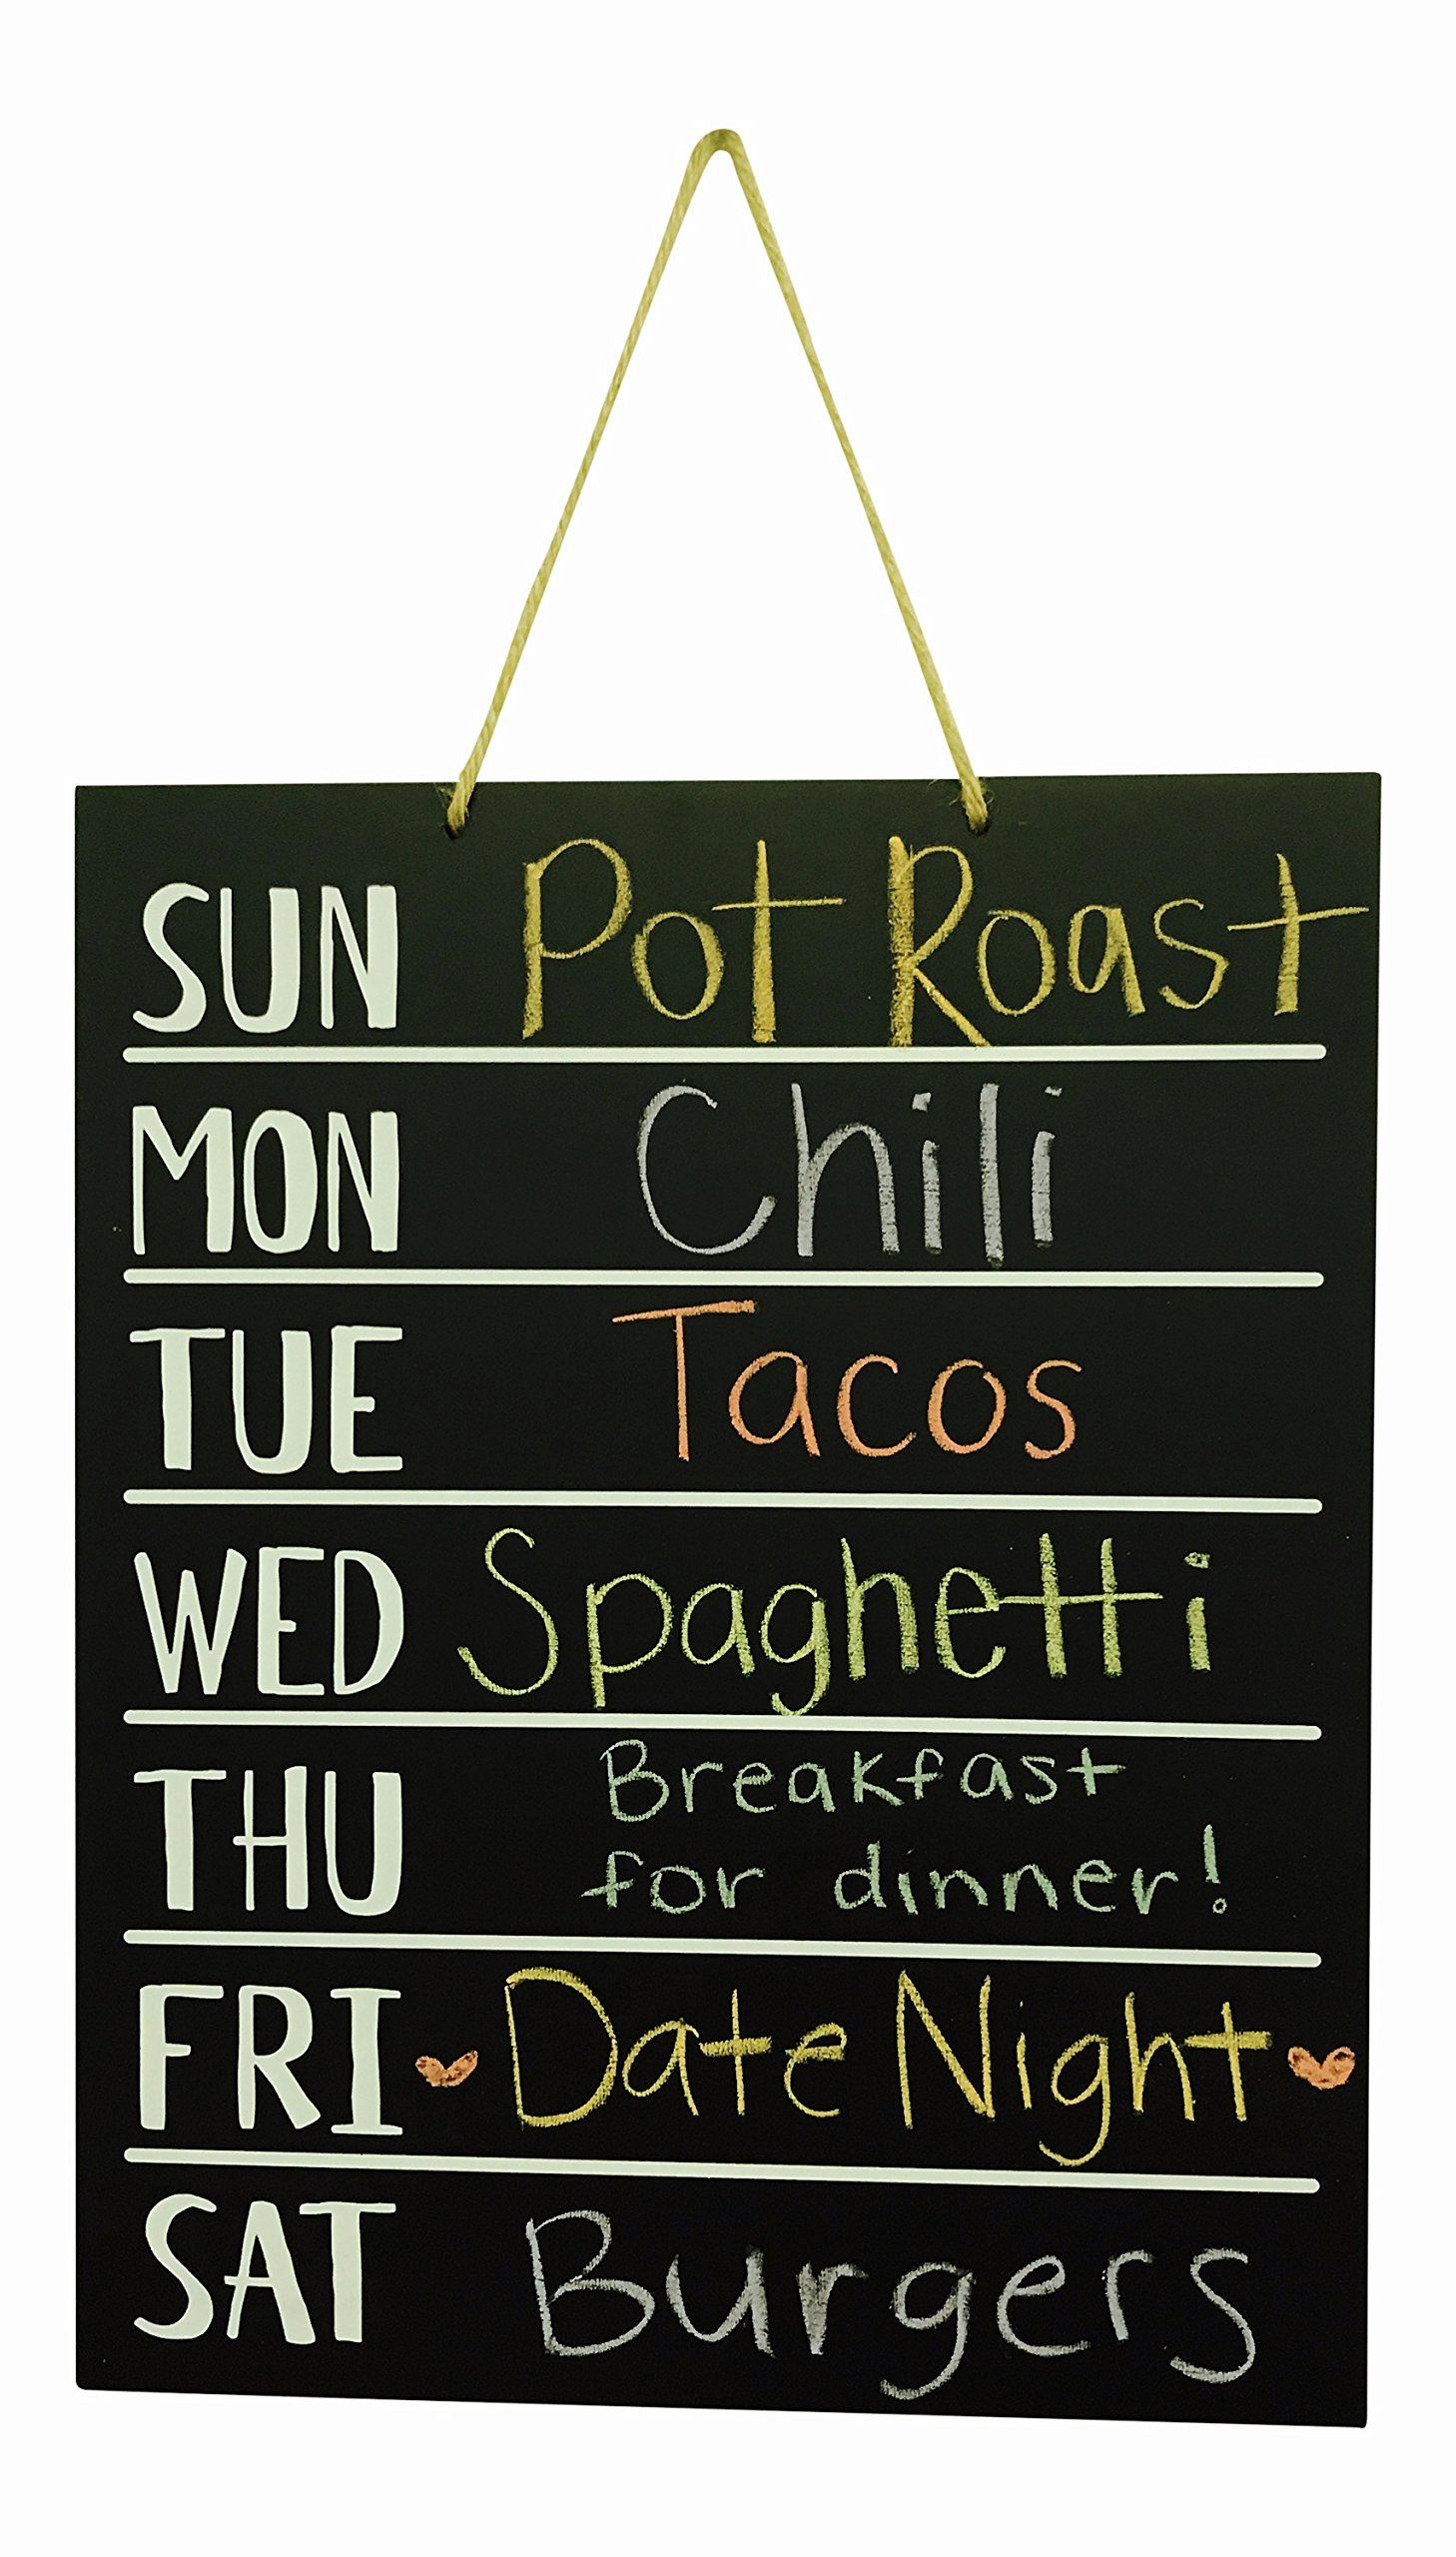 JennyGems - Menu Board- Wooden Chalkboard - Weekly Menu Meal Planner - Chore Board - Kitchen To Do List and Weekly Planner- Hours of operation - For Use With Actual Chalk (Do Not Use Liquid Chalk Pens